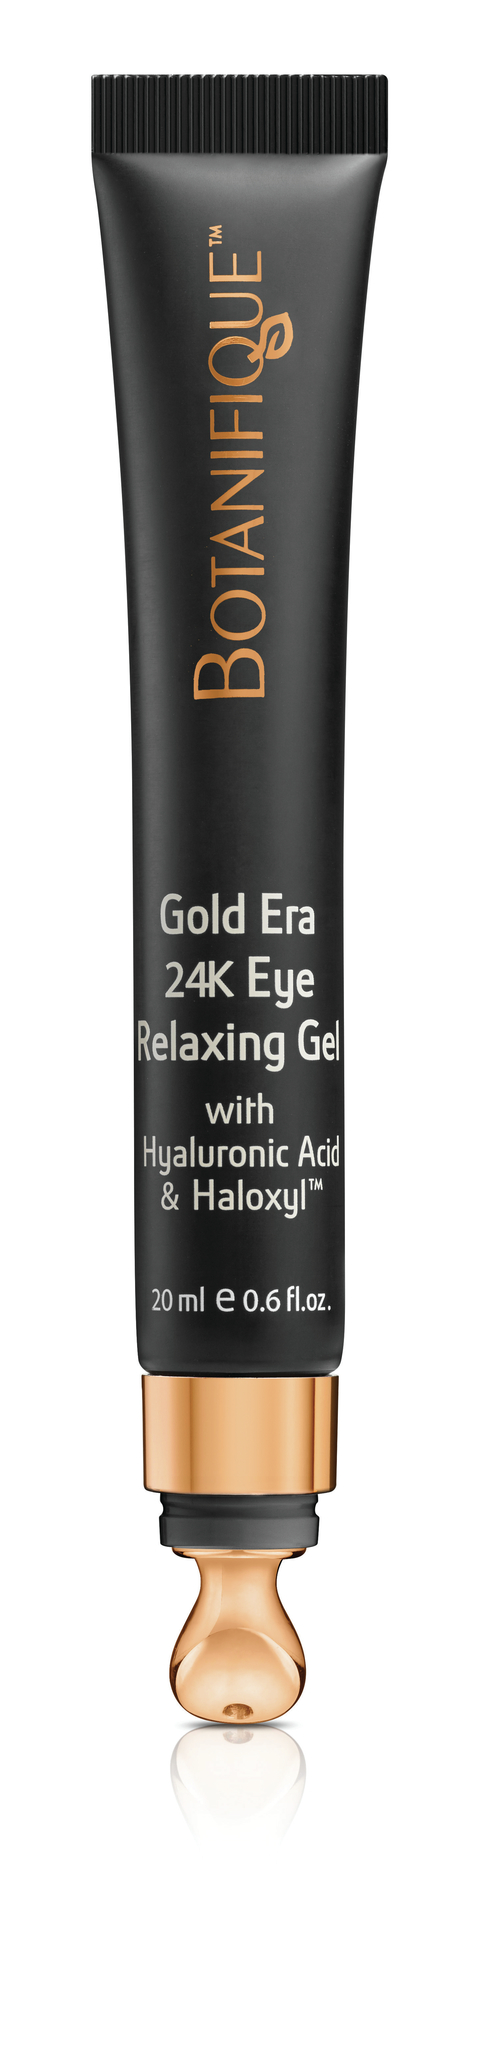 Gold Era 24K Eye Relaxing Gel